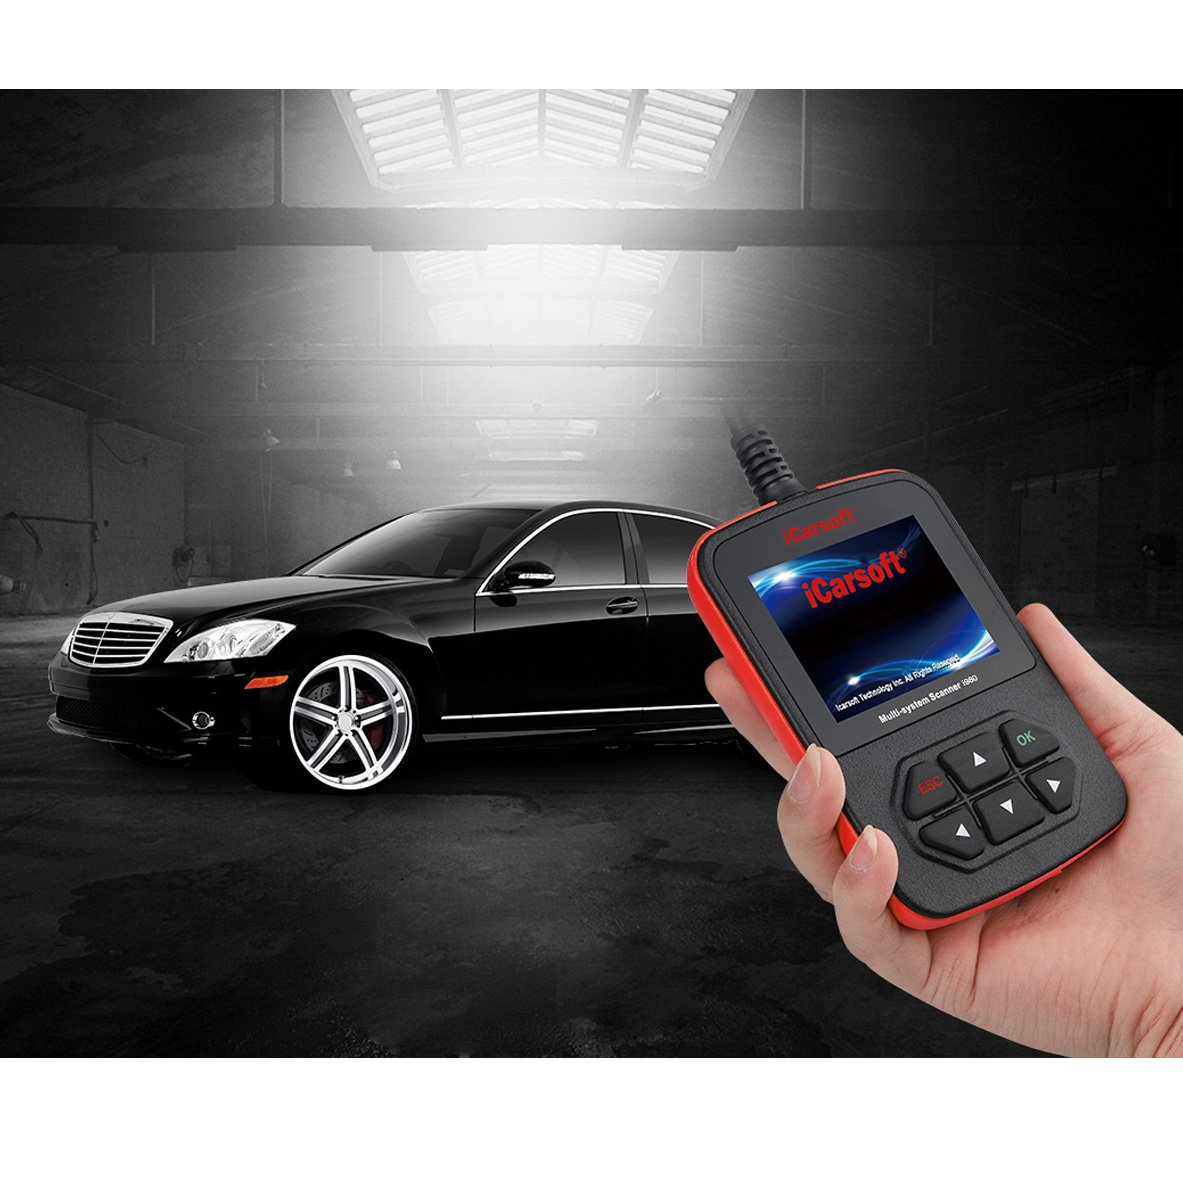 iCarsoft Genuine Mercedes Benz I980 Professional Diagnostic Scanner Tool by iCarsoft (Image #8)